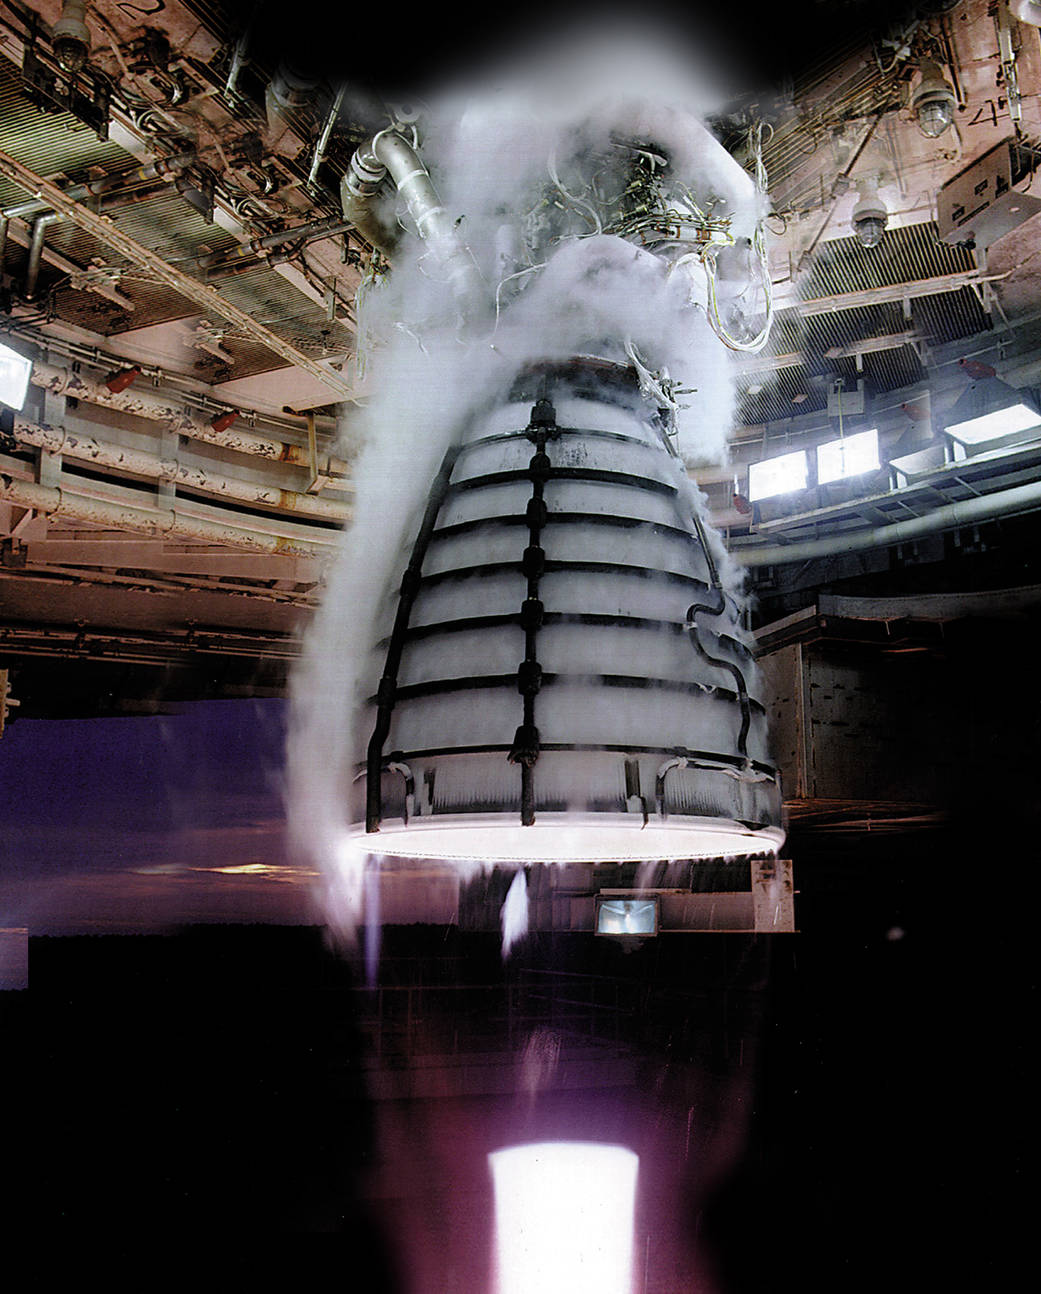 RS-25 engine undergoing testing